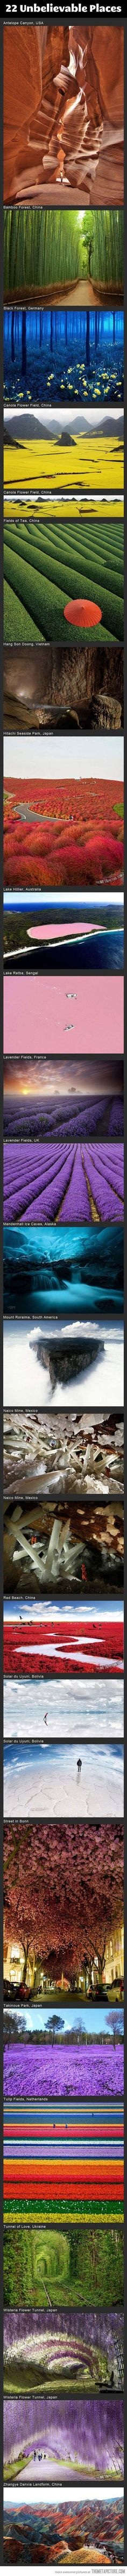 unbelievable places around the world